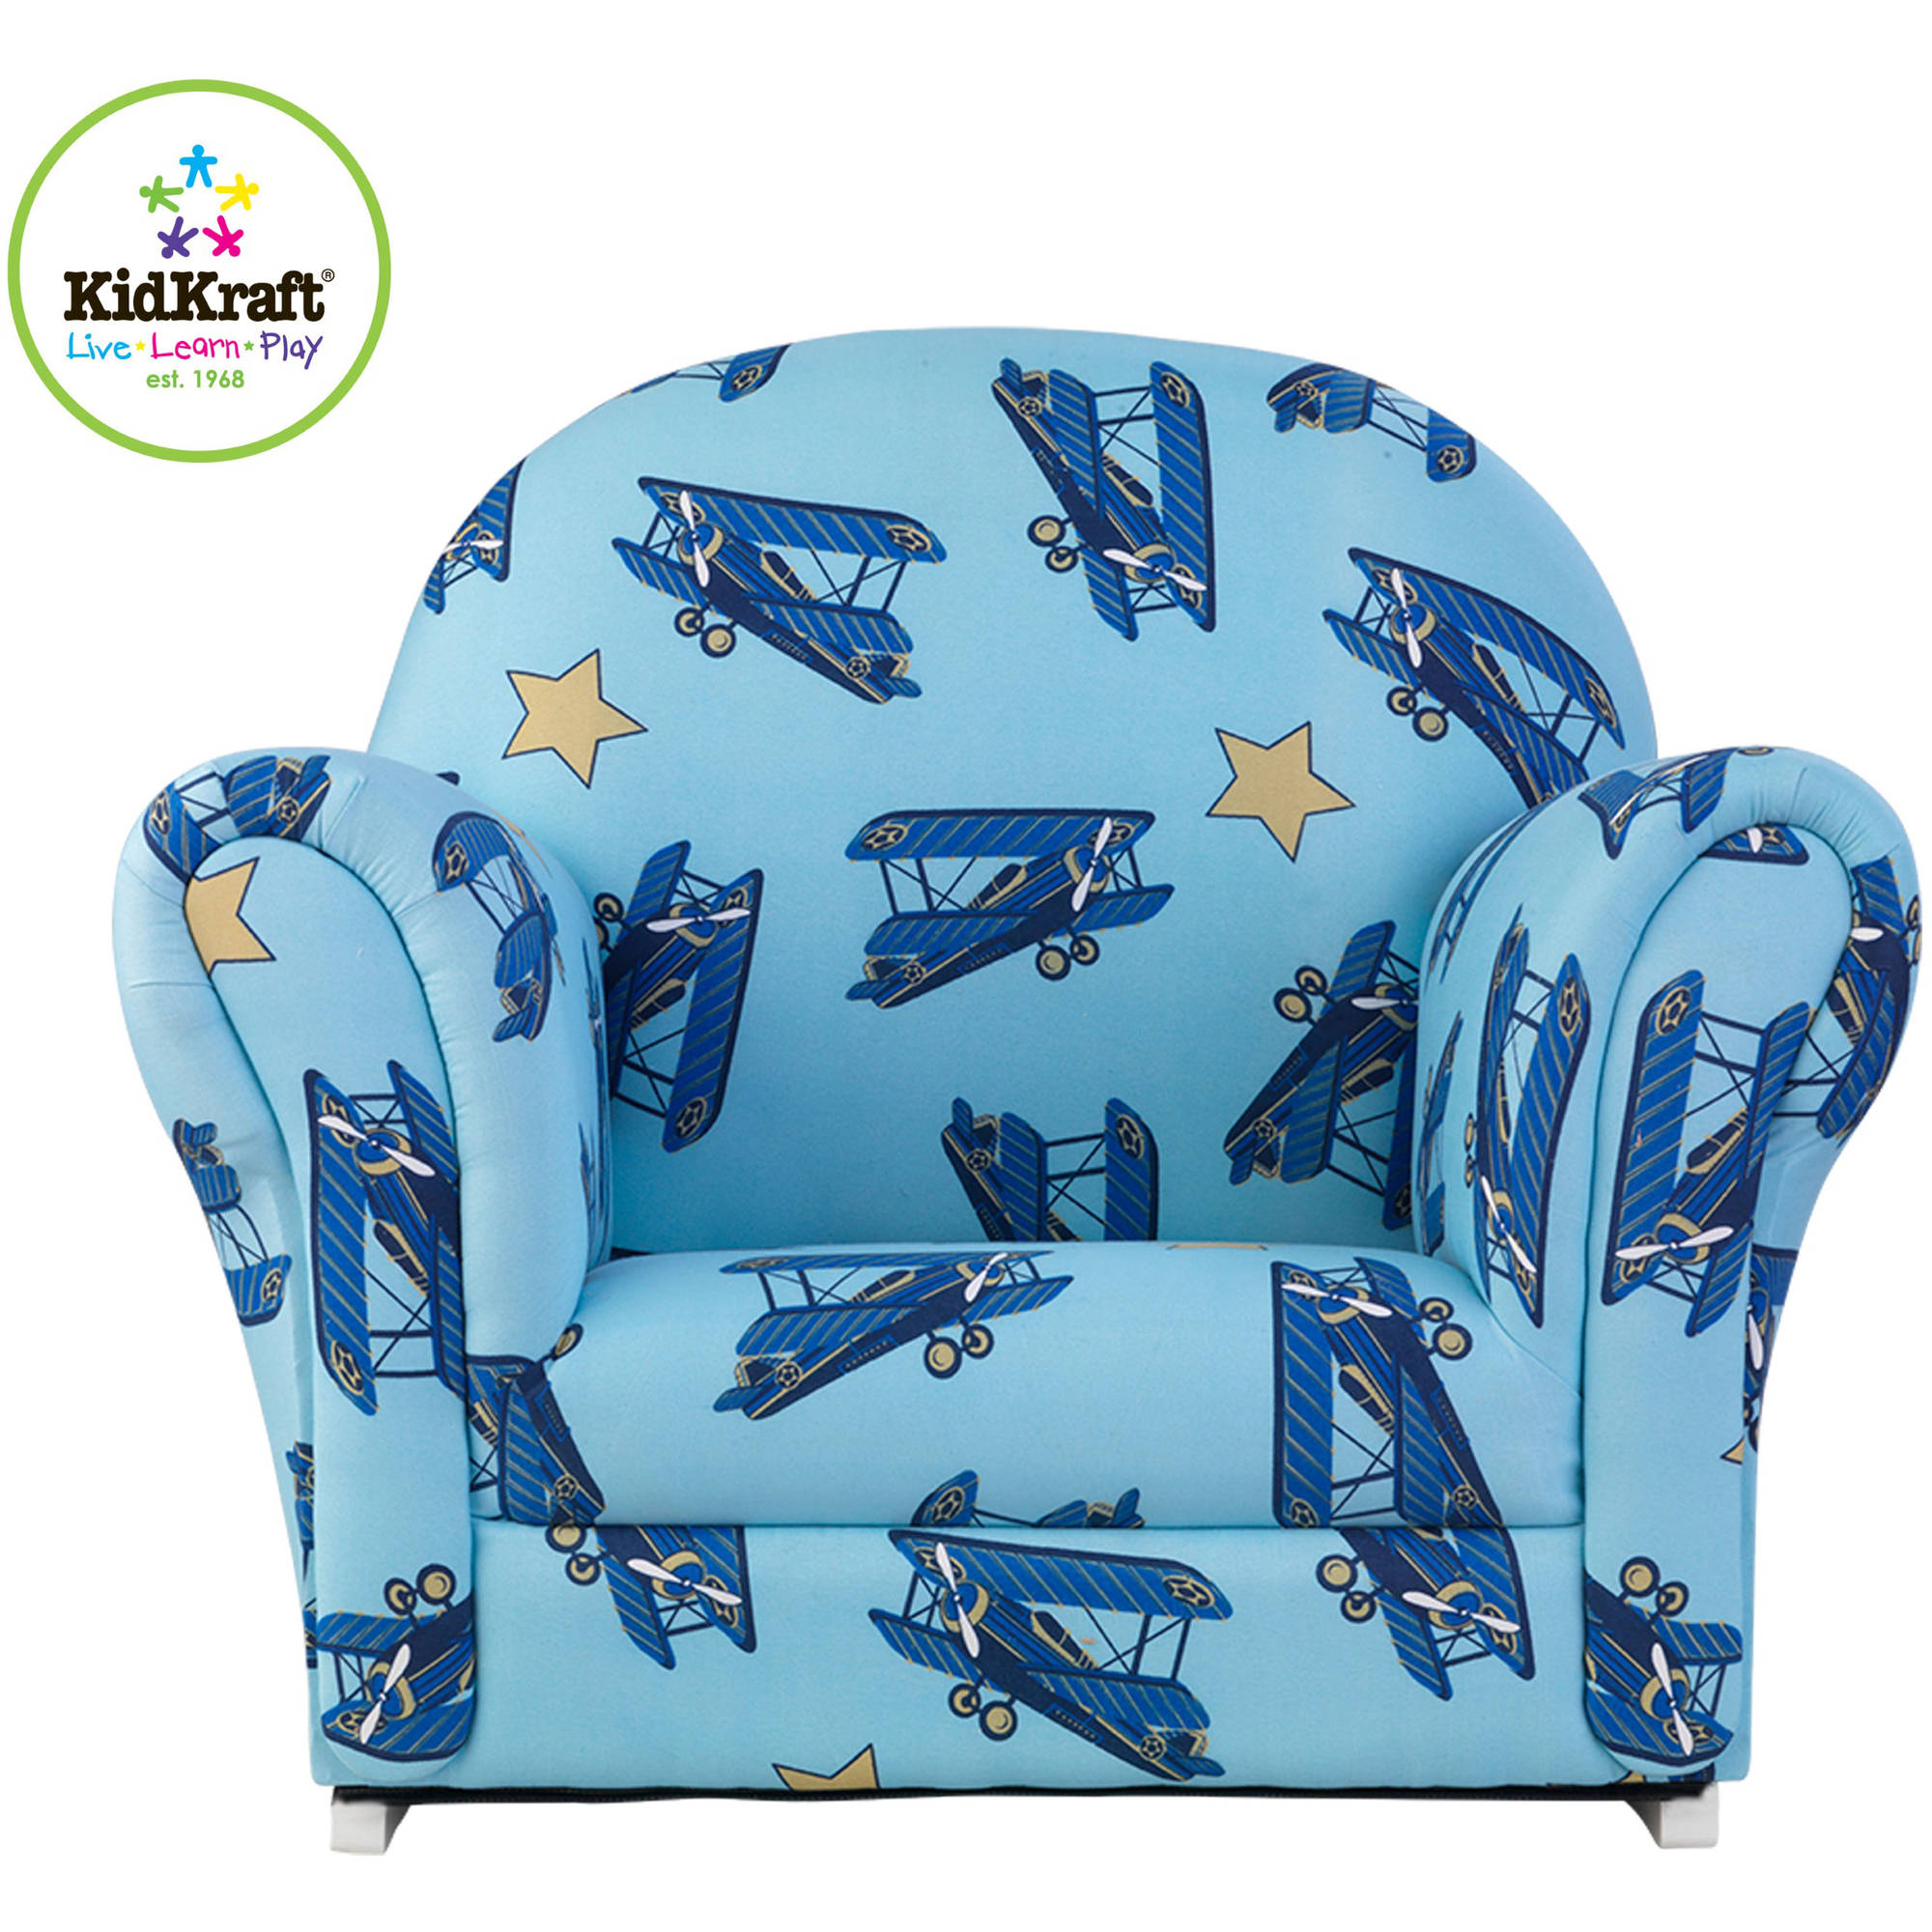 KidKraft Upholstered Rocker, Airplanes